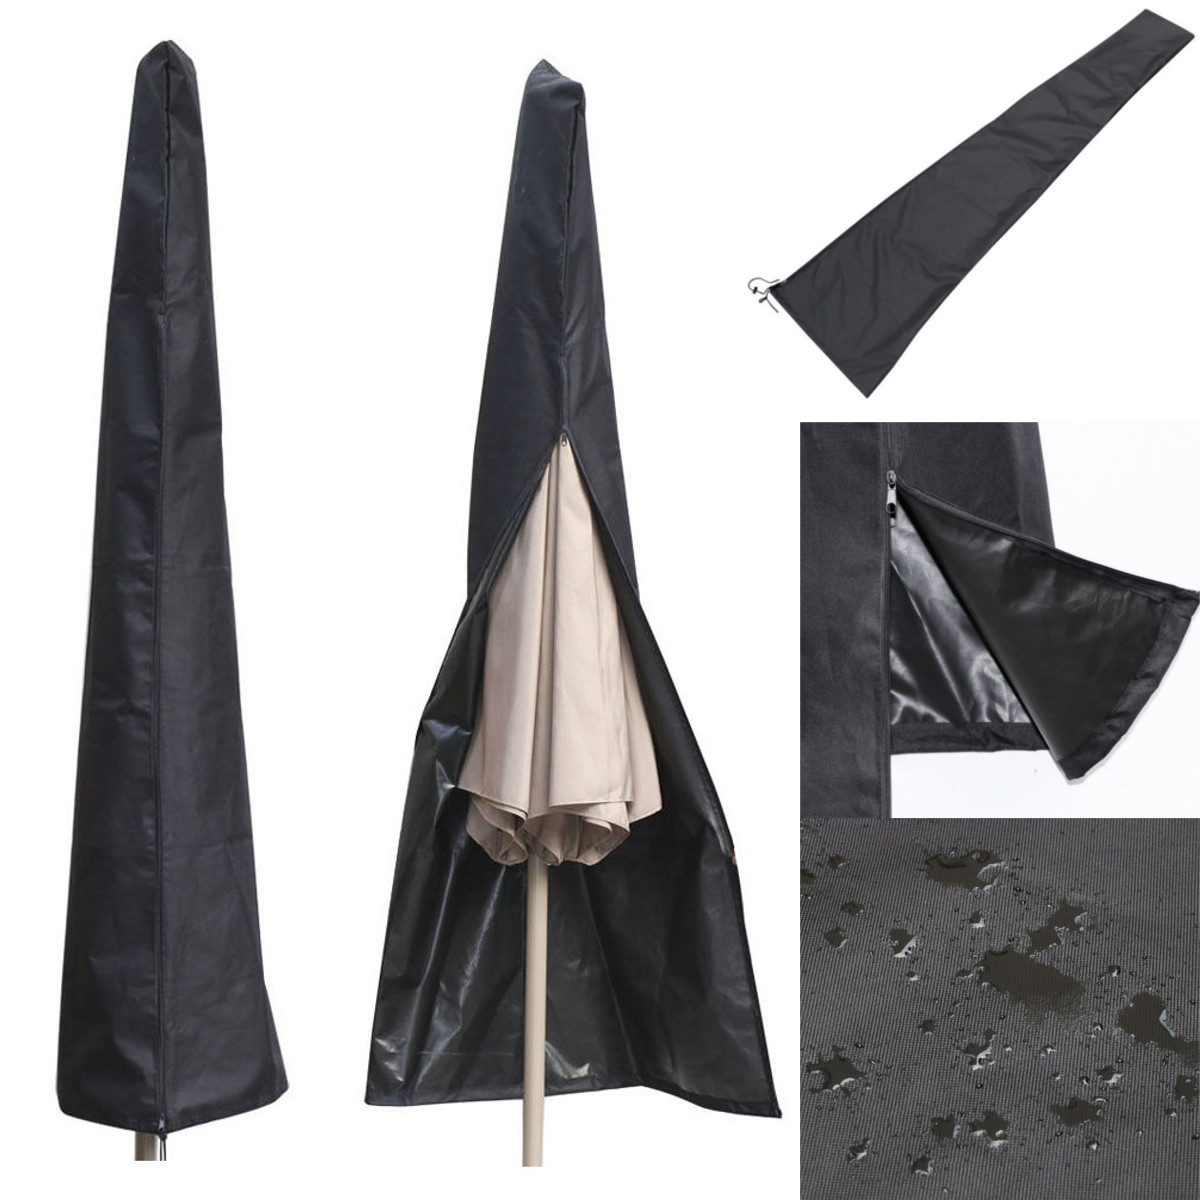 Patio Umbrella Covers With Zipper: Outdoor Waterproof Patio Umbrella Canopy Cover Protective